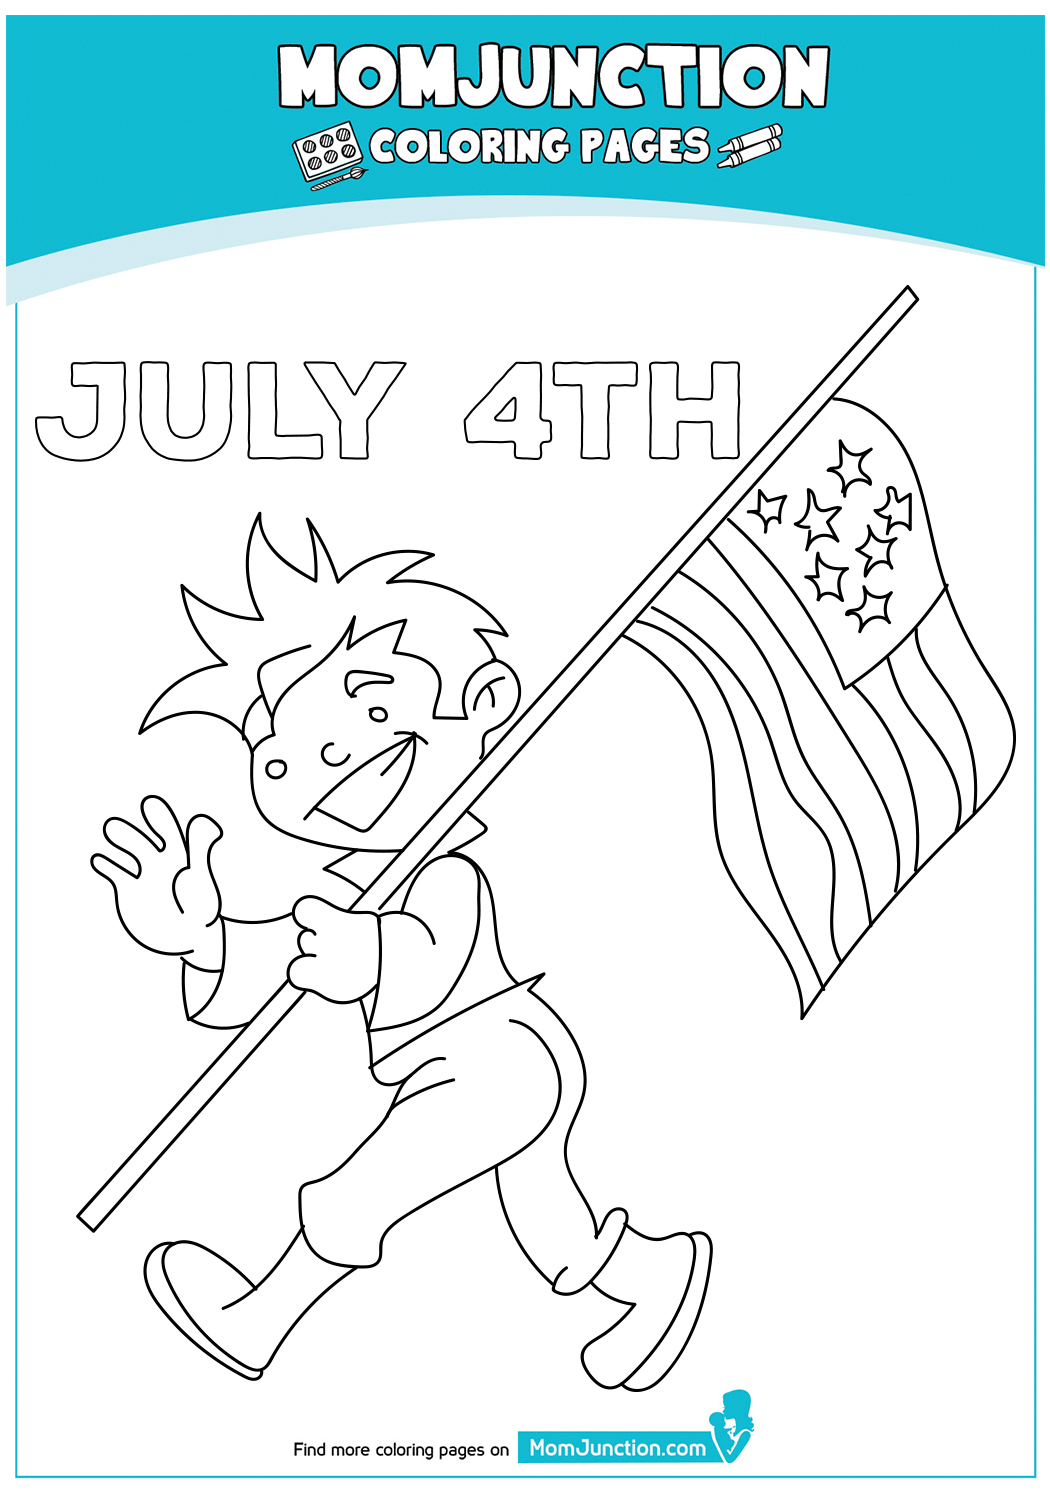 Kid-Walking-With-The-Flag-On-4th-July-317